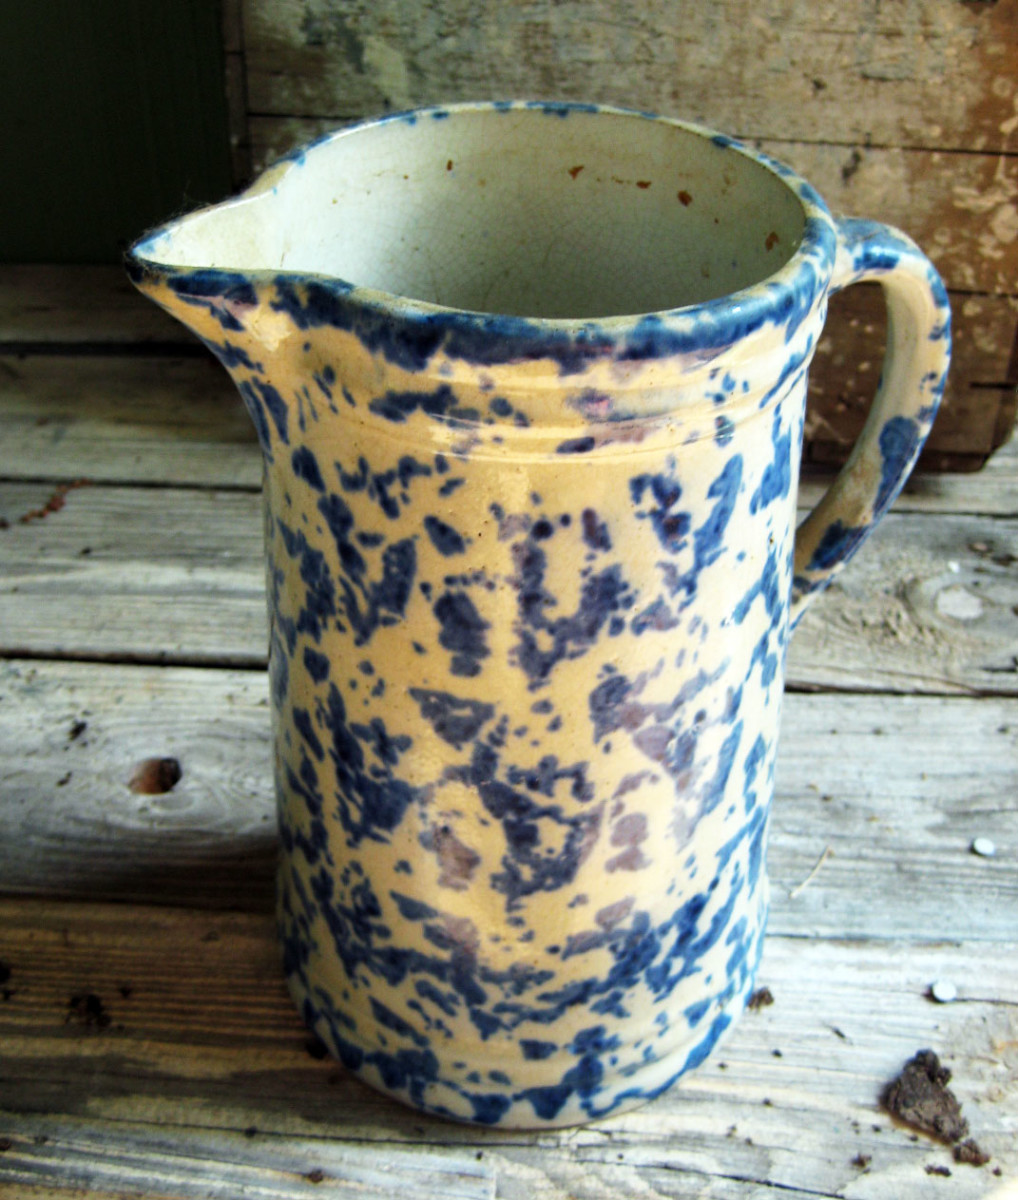 Antique Spongeware and Spatterware - An American Stoneware Tradition